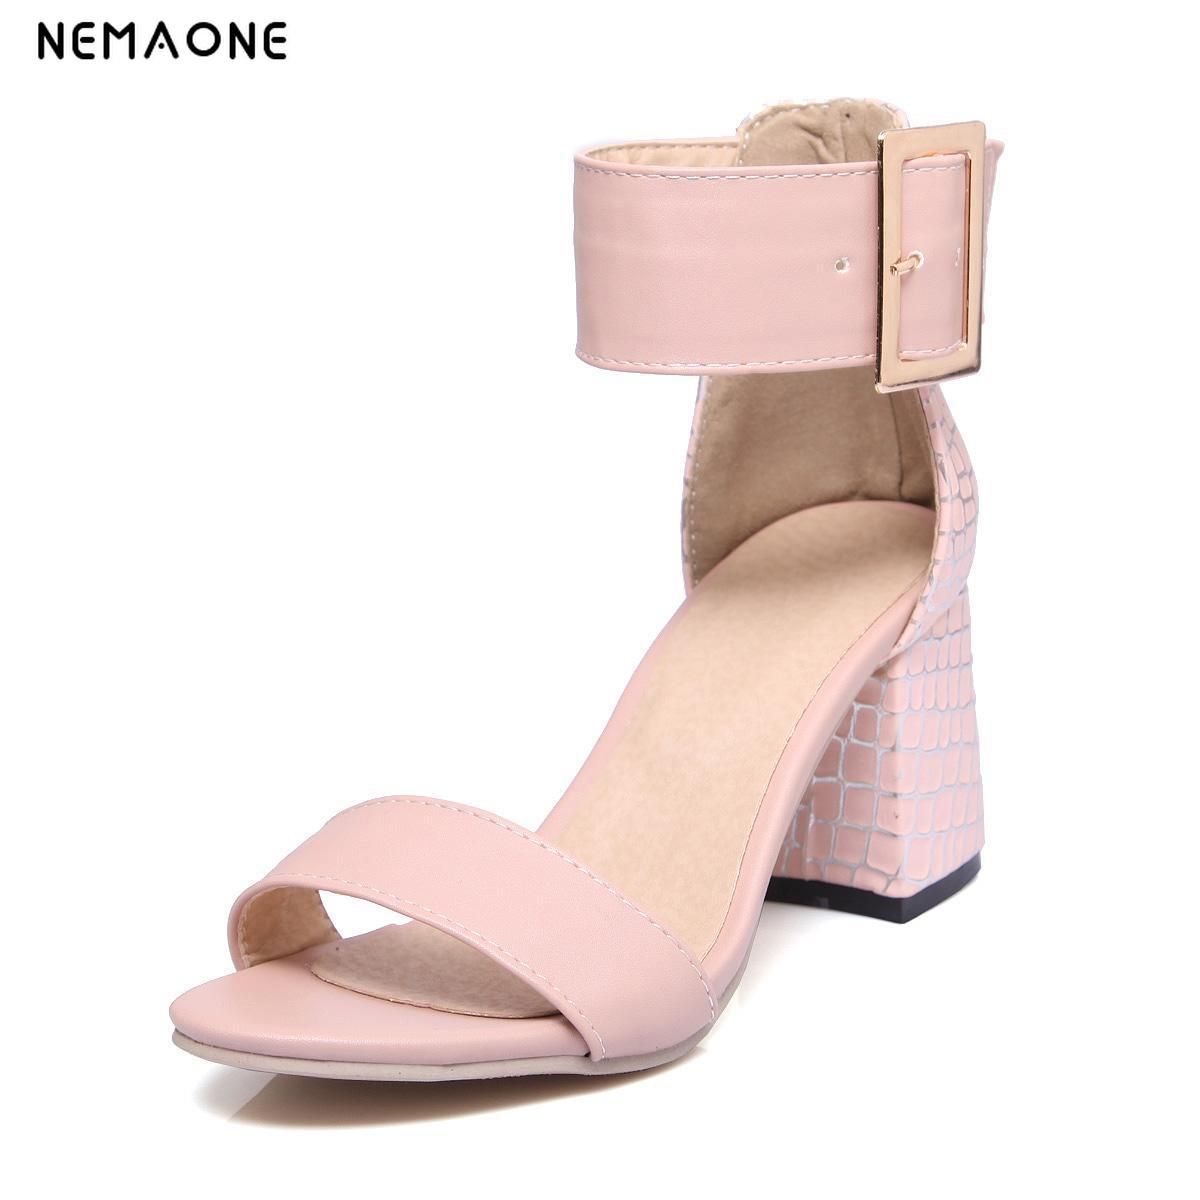 NEMAONE 2017 New elegant women shoes high heels sandals women summer shoes woman sexy ankle strap ladies shoes white pink blue<br>